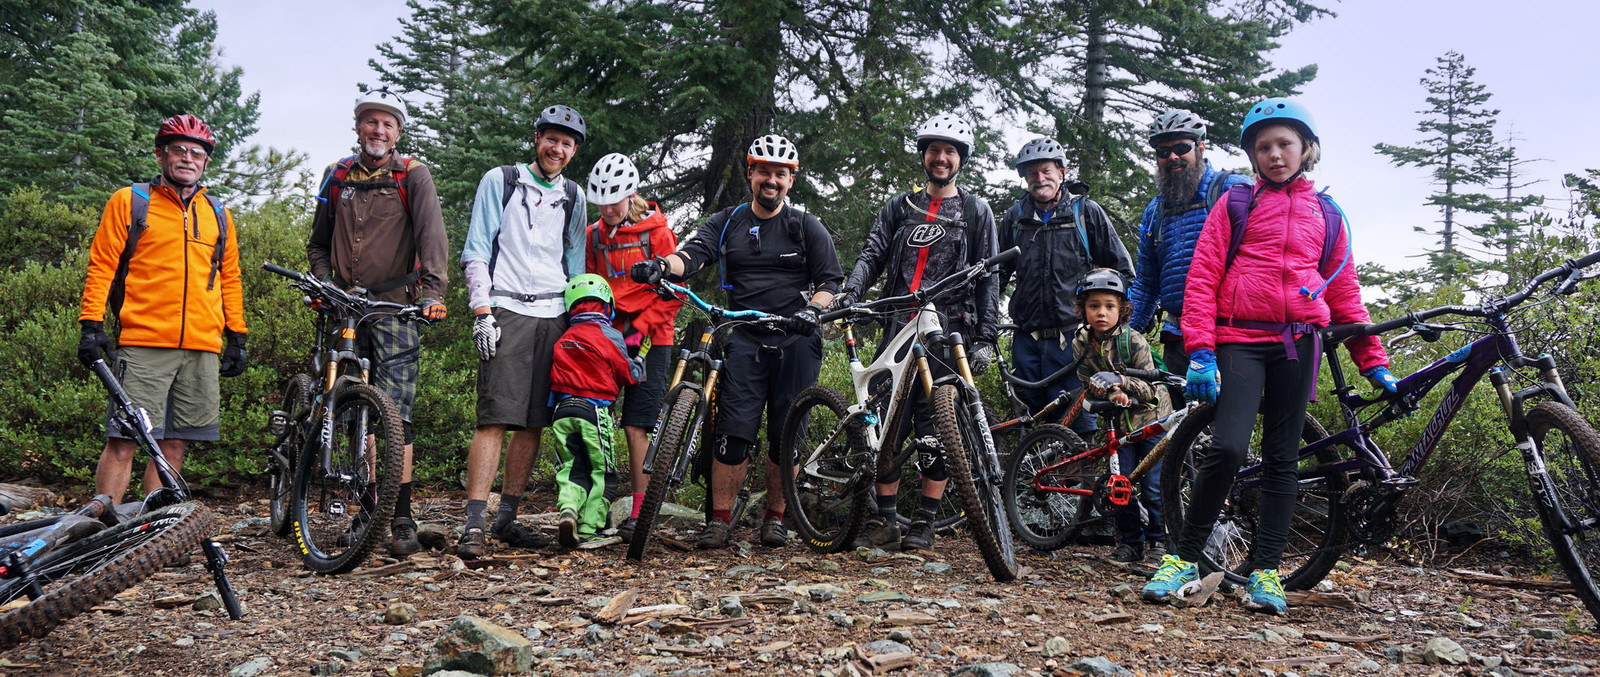 Riders of all ages and skill levels can enjoy Mills Peak Trail.